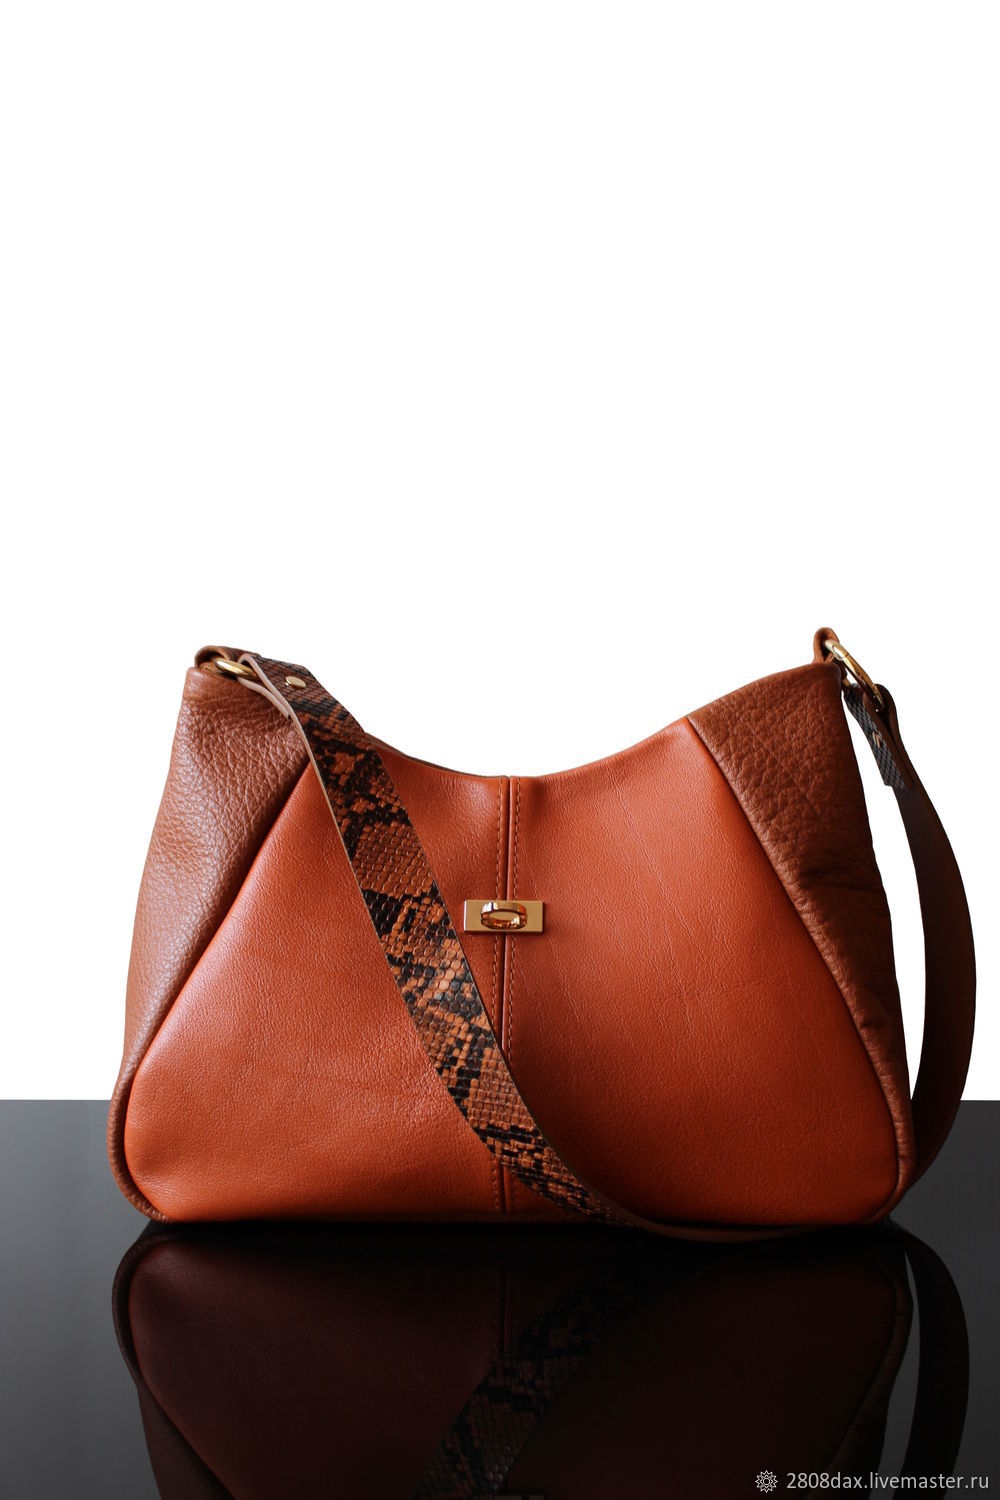 a47c682937 New Orange Leather bag, bag with decorative strap – shop online on  Livemaster with shipping - IFG6XCOM | Bordeaux